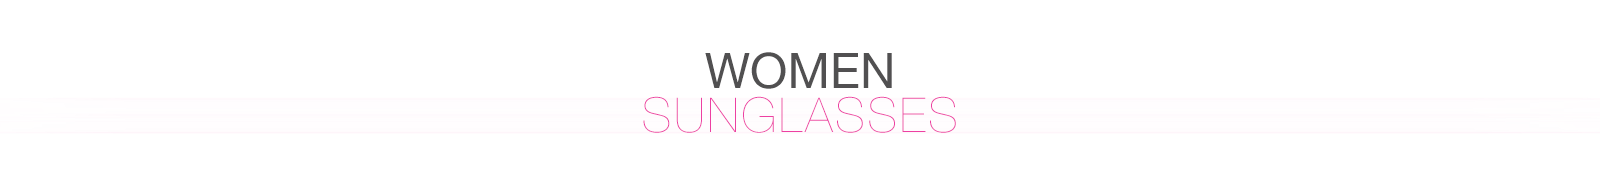 WOMEN - Sunglasses